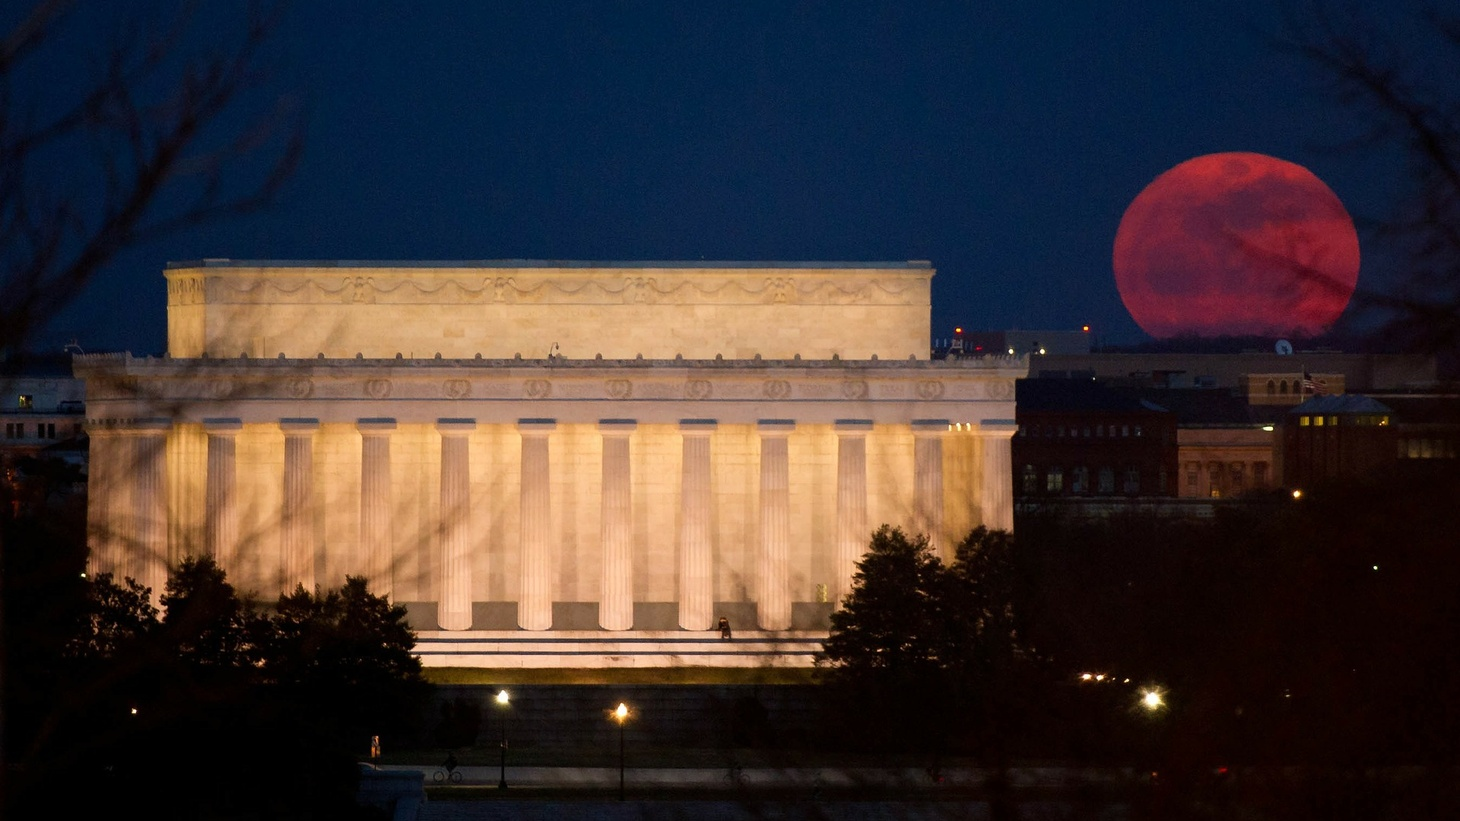 Washington DC at night with a red moon.